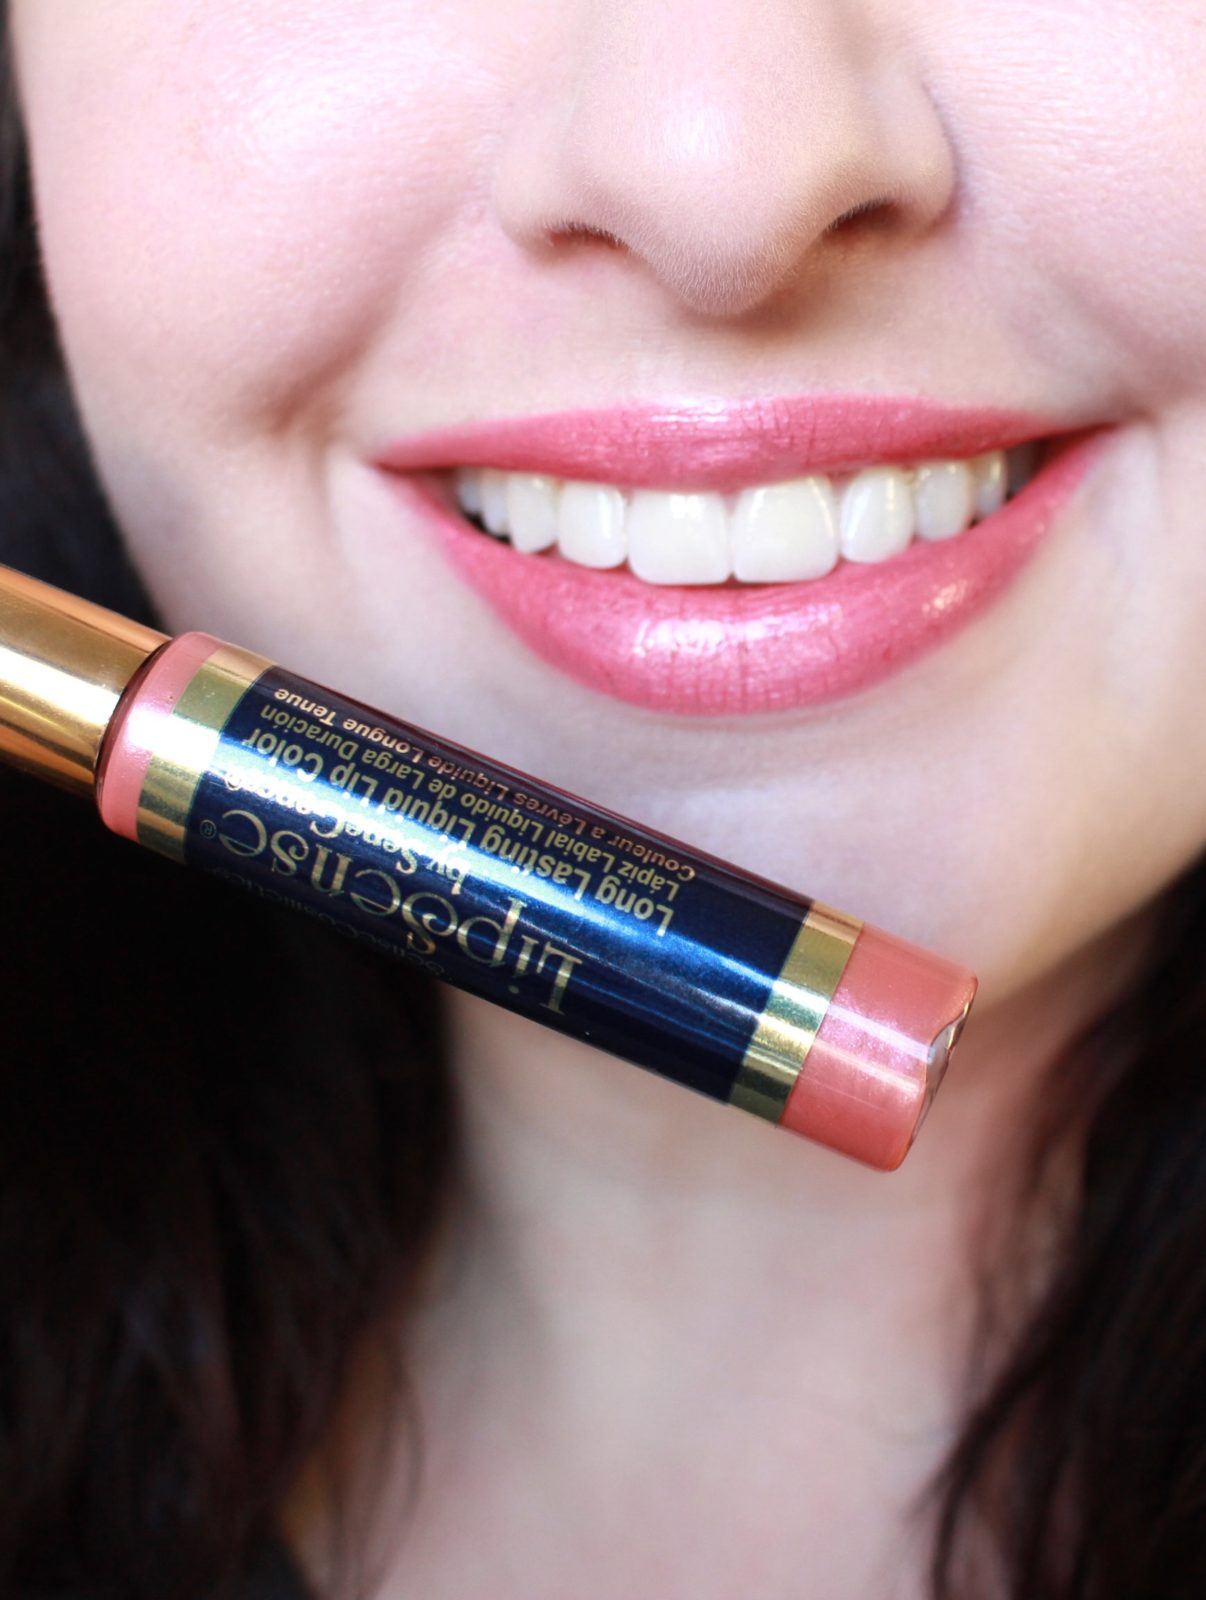 The LipSense Review you have been waiting for! I recently got my hands on some LipSense lip colors from Bombshell Cosmetics, and I couldn't wait to try them on for you!  - LipSense Bombshell Review by popular Los Angeles cruelty free beauty blogger My Beauty Bunny